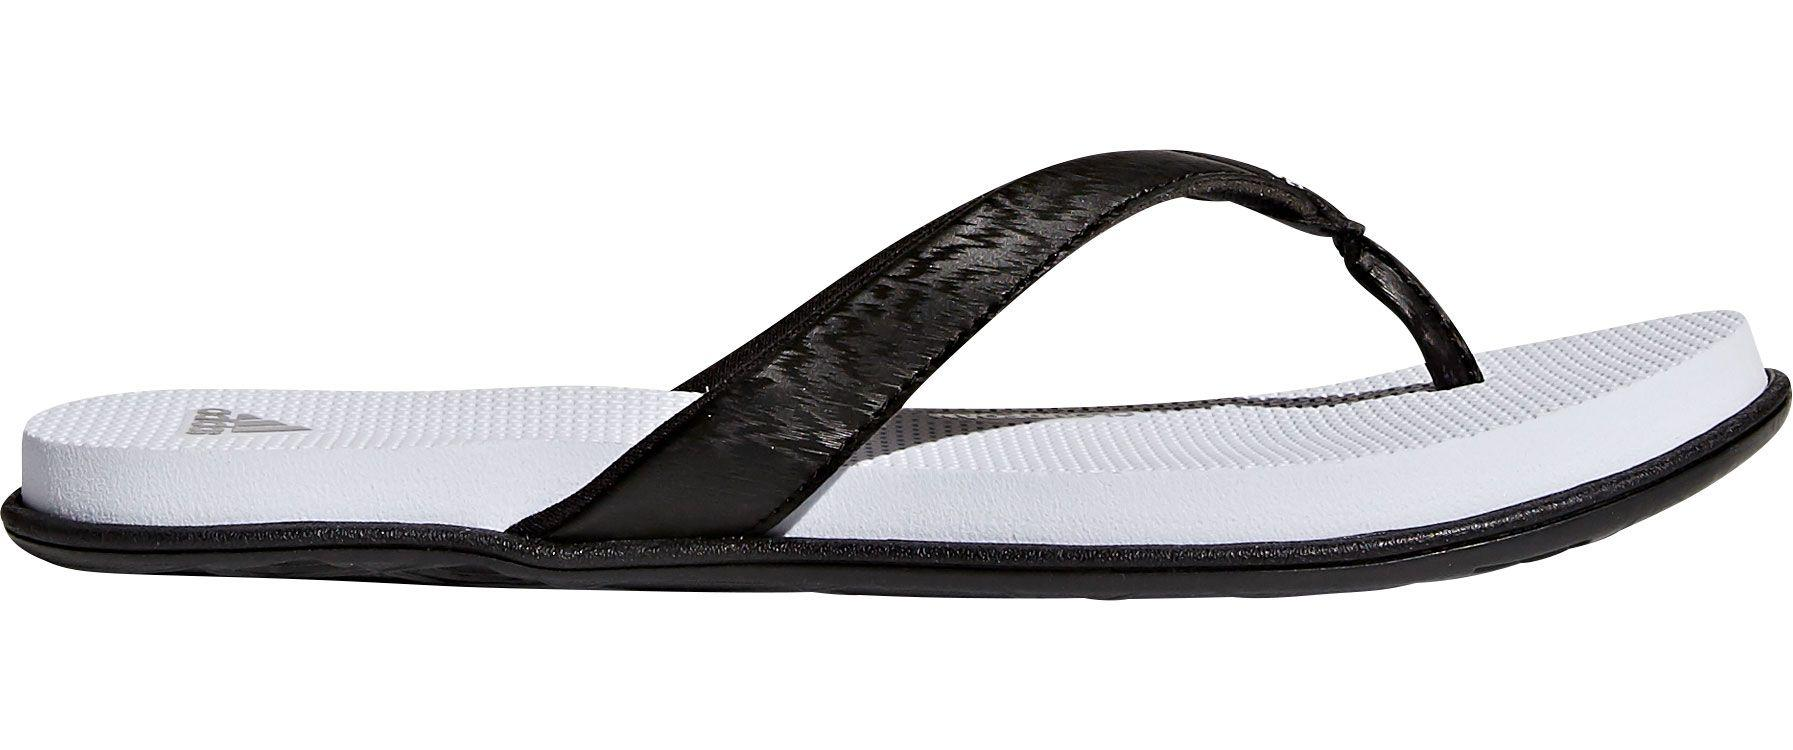 be7385114 Lyst - adidas Cloudfoam One Thong Sandals in Black